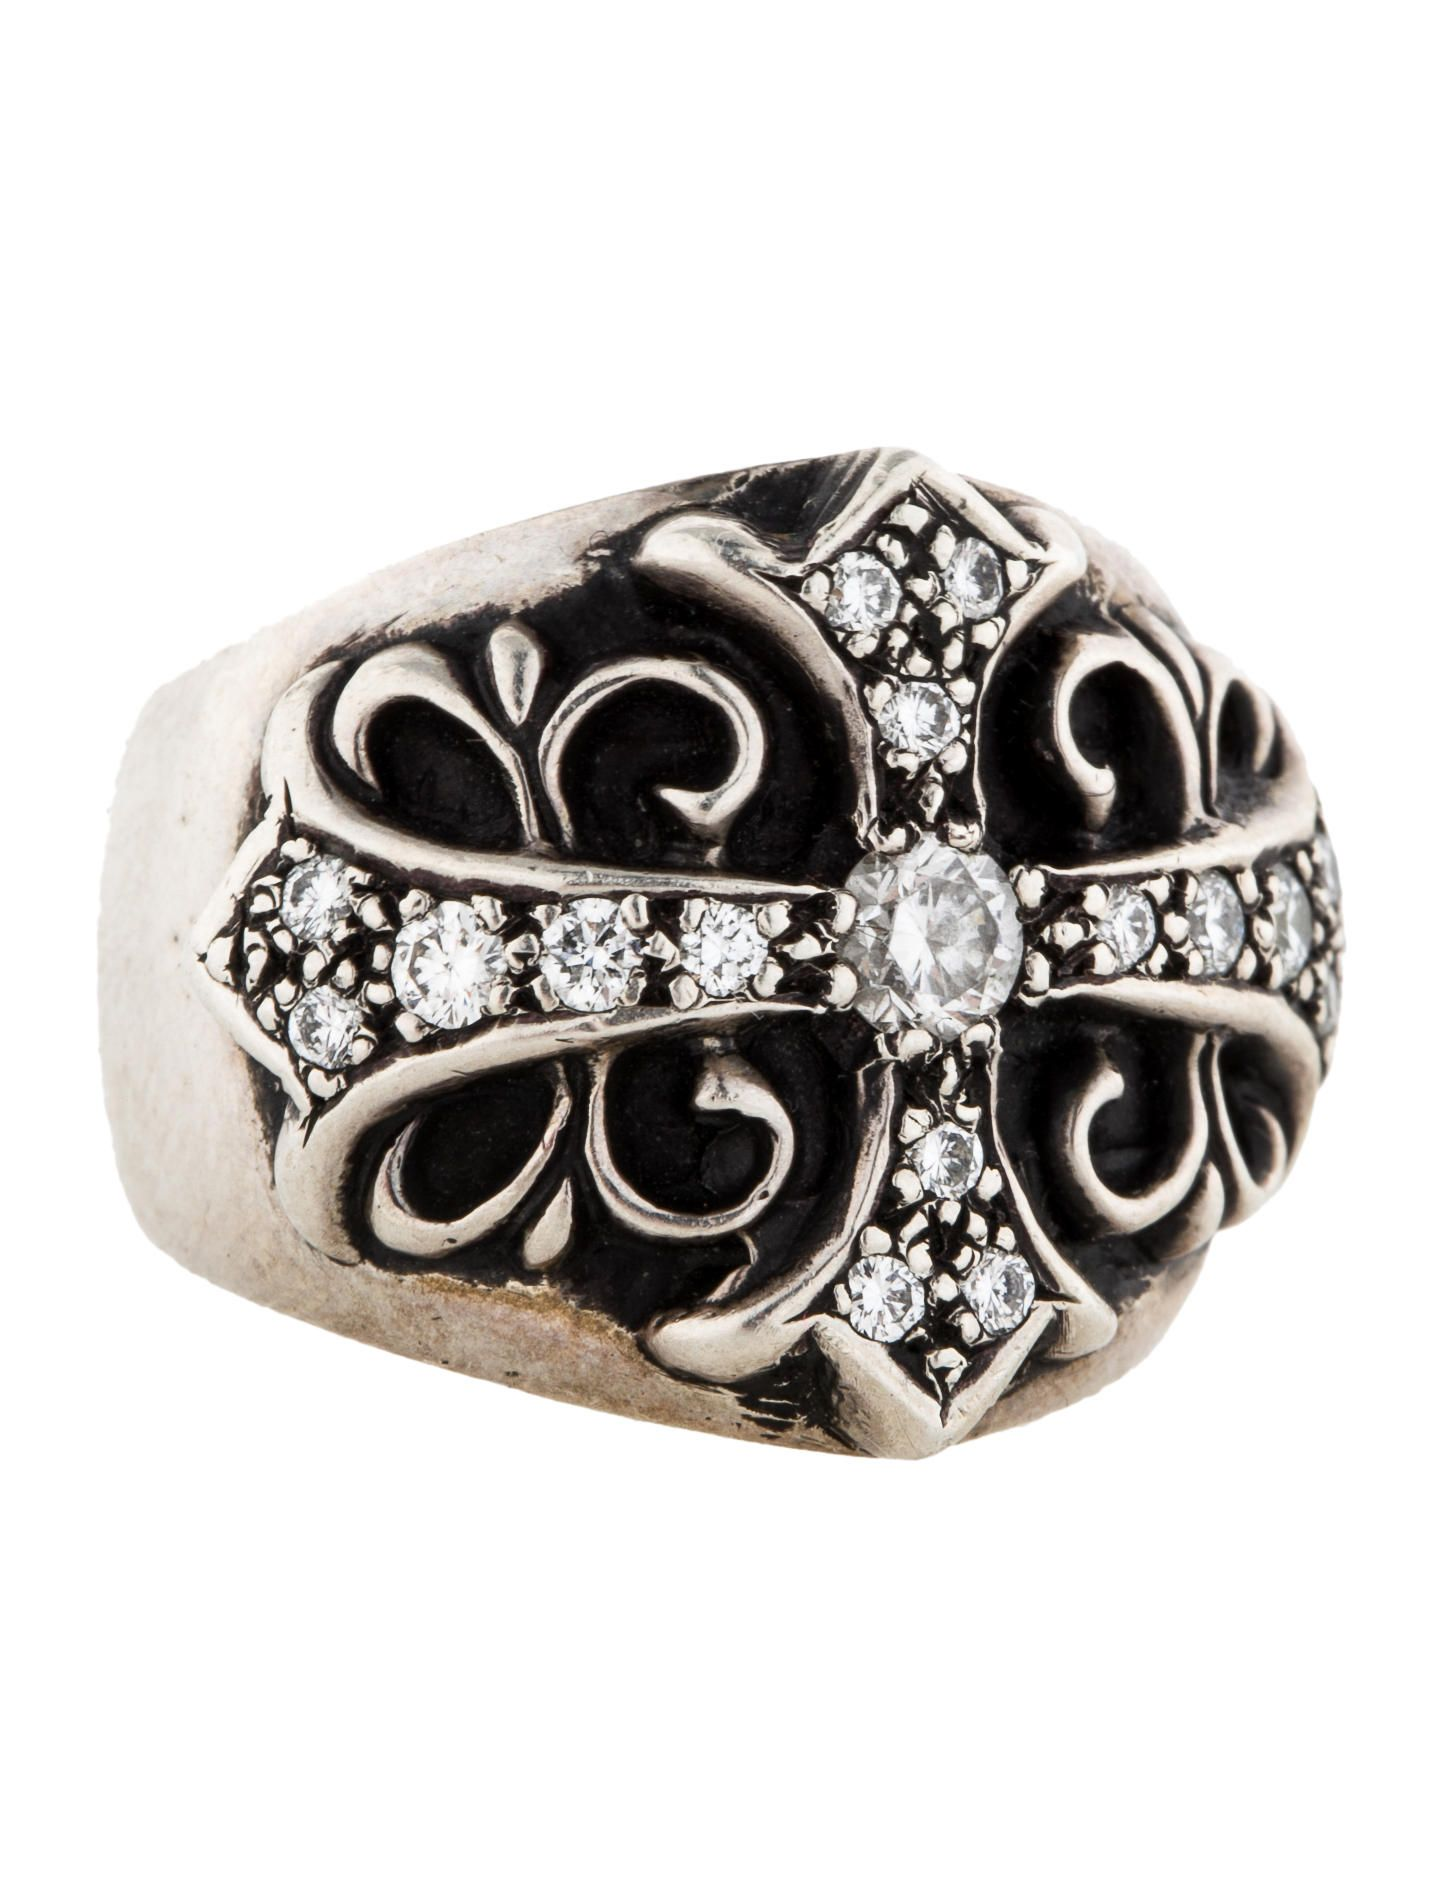 812d7bd90efd Sterling silver Chrome Hearts ring with diamond adorned cross motif. Ring  size 9. Metal  Sterling Silver Finish  Blackened Hallmark  .